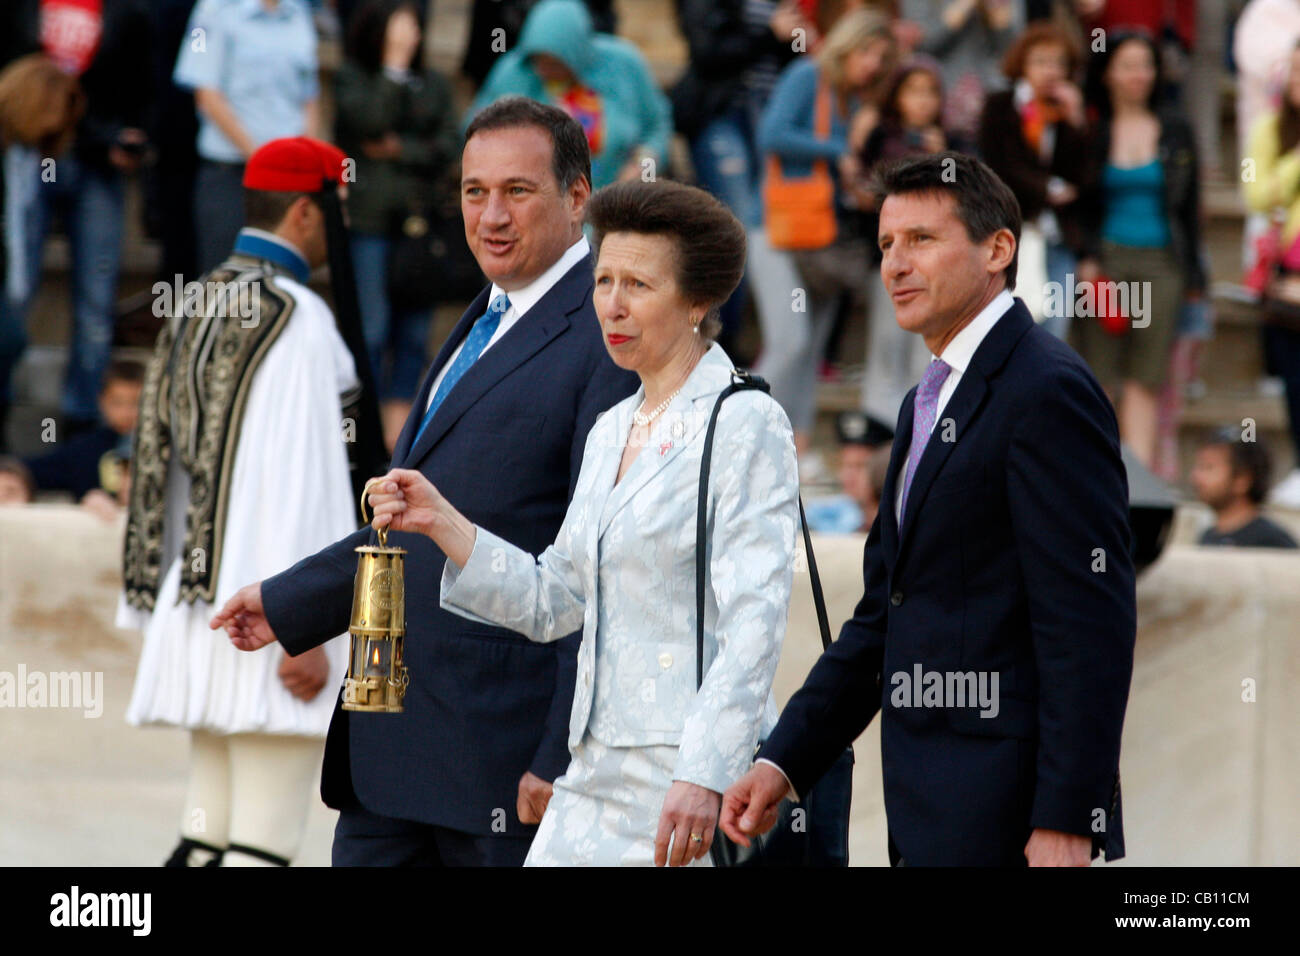 May 17, 2012 - Athens, Greece - Princess ANNE holds a lantern with the Olympic Flame next to her from right is SEBASTIAN - Stock Image